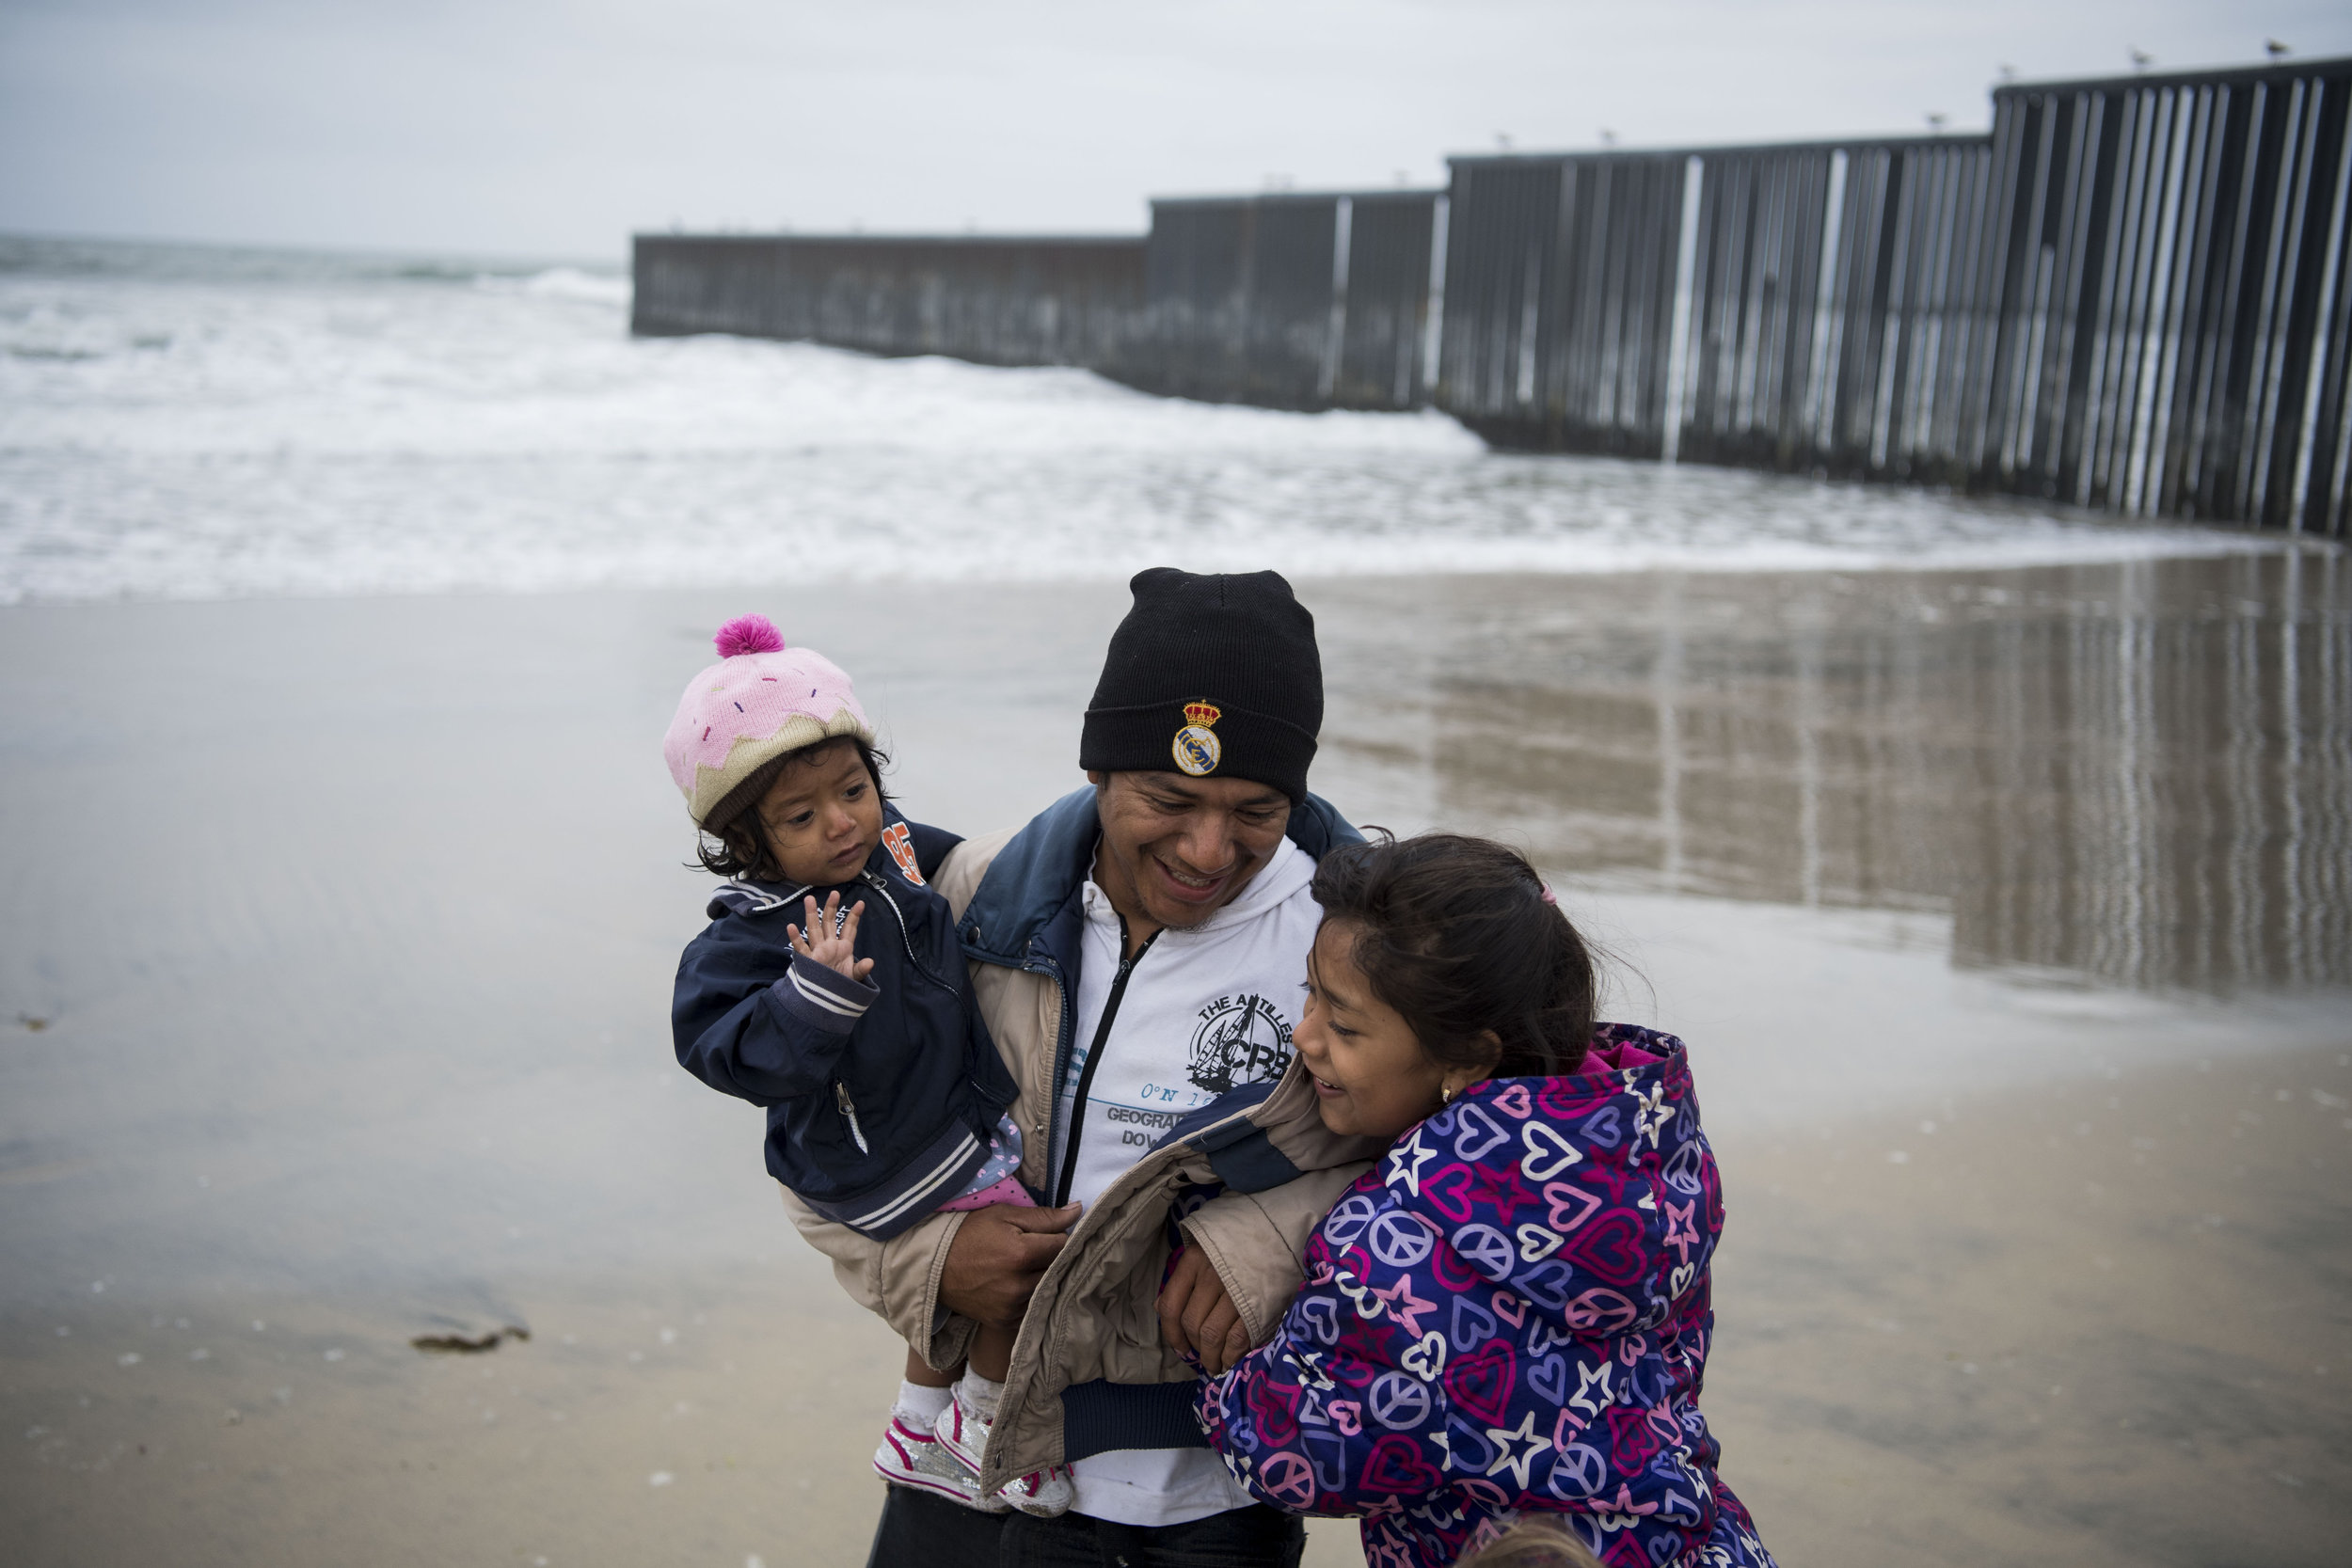 William Rafael Carranza Martinez laughs after running away from the waves with Jessica Carolina Dominguez Martinez, 1, and Elda Hidalia Martinez, 9, near the border wall before marrying his partner at the beginning of the March Without Borders at Friendship Park on April 29, 2018 in Tijuana, Mexico. Hundreds of migrants from Central America traveled for about a month across Mexico to reach the United States border. In the afternoon, the group, including the Martinez family, plans to go to the San Ysidro border crossing south of San Diego, California, where many of the migrants will seek asylum.